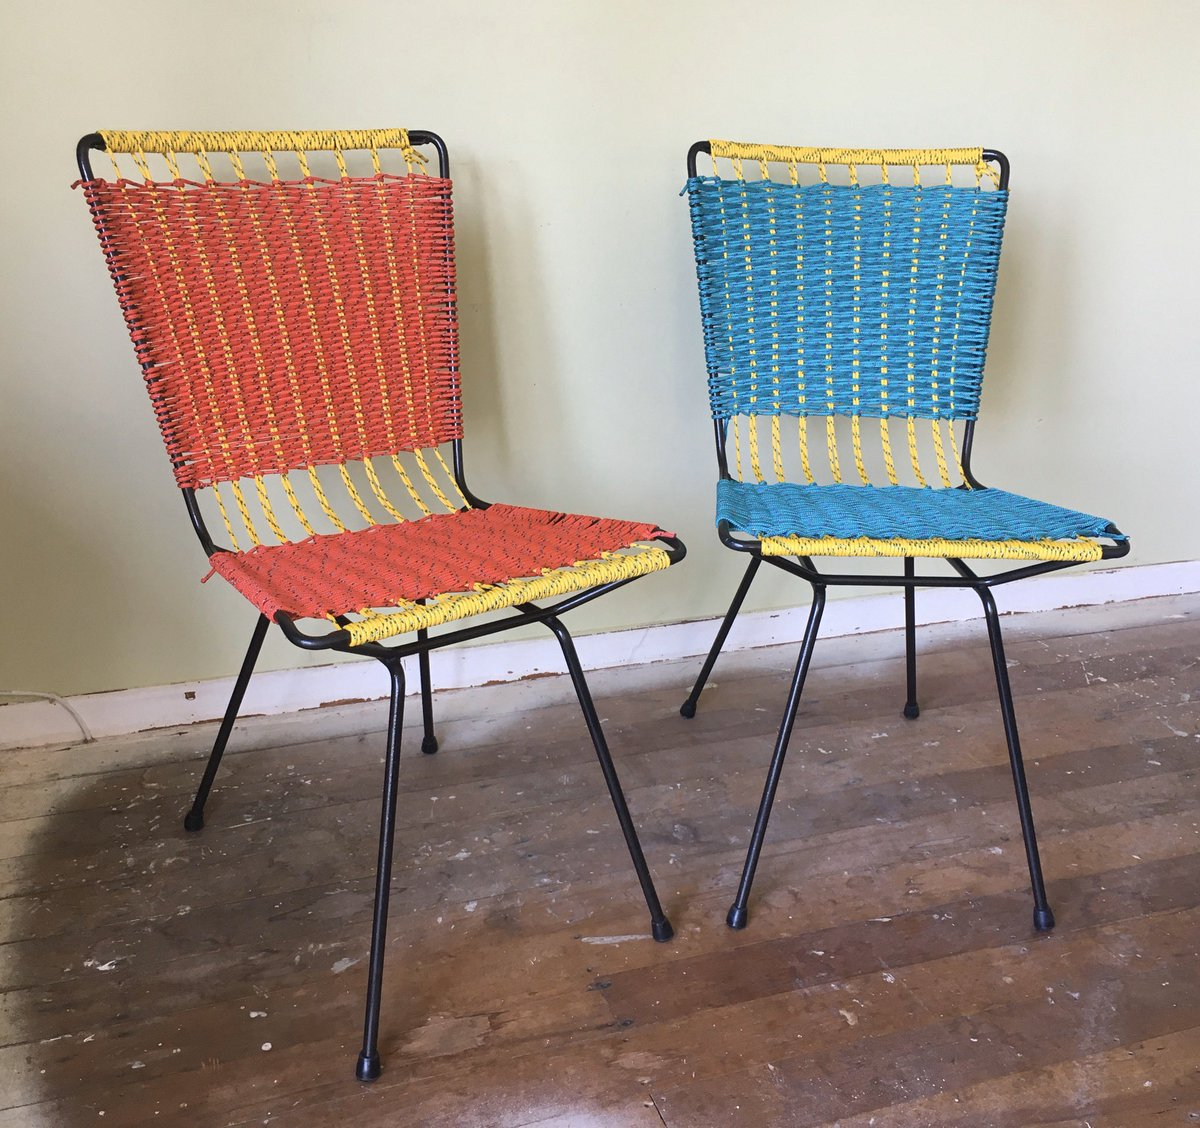 I've just finished upcycling these dining chairs. I don't need new chairs so I'm selling them. Know anyone who wants a pair of cool chairs? (Can make 2 more for a set): https://www.trademe.co.nz/antiques-collectables/art-deco-retro/furniture/auction-2547374416.htm…pic.twitter.com/Kn2SAbRYnD